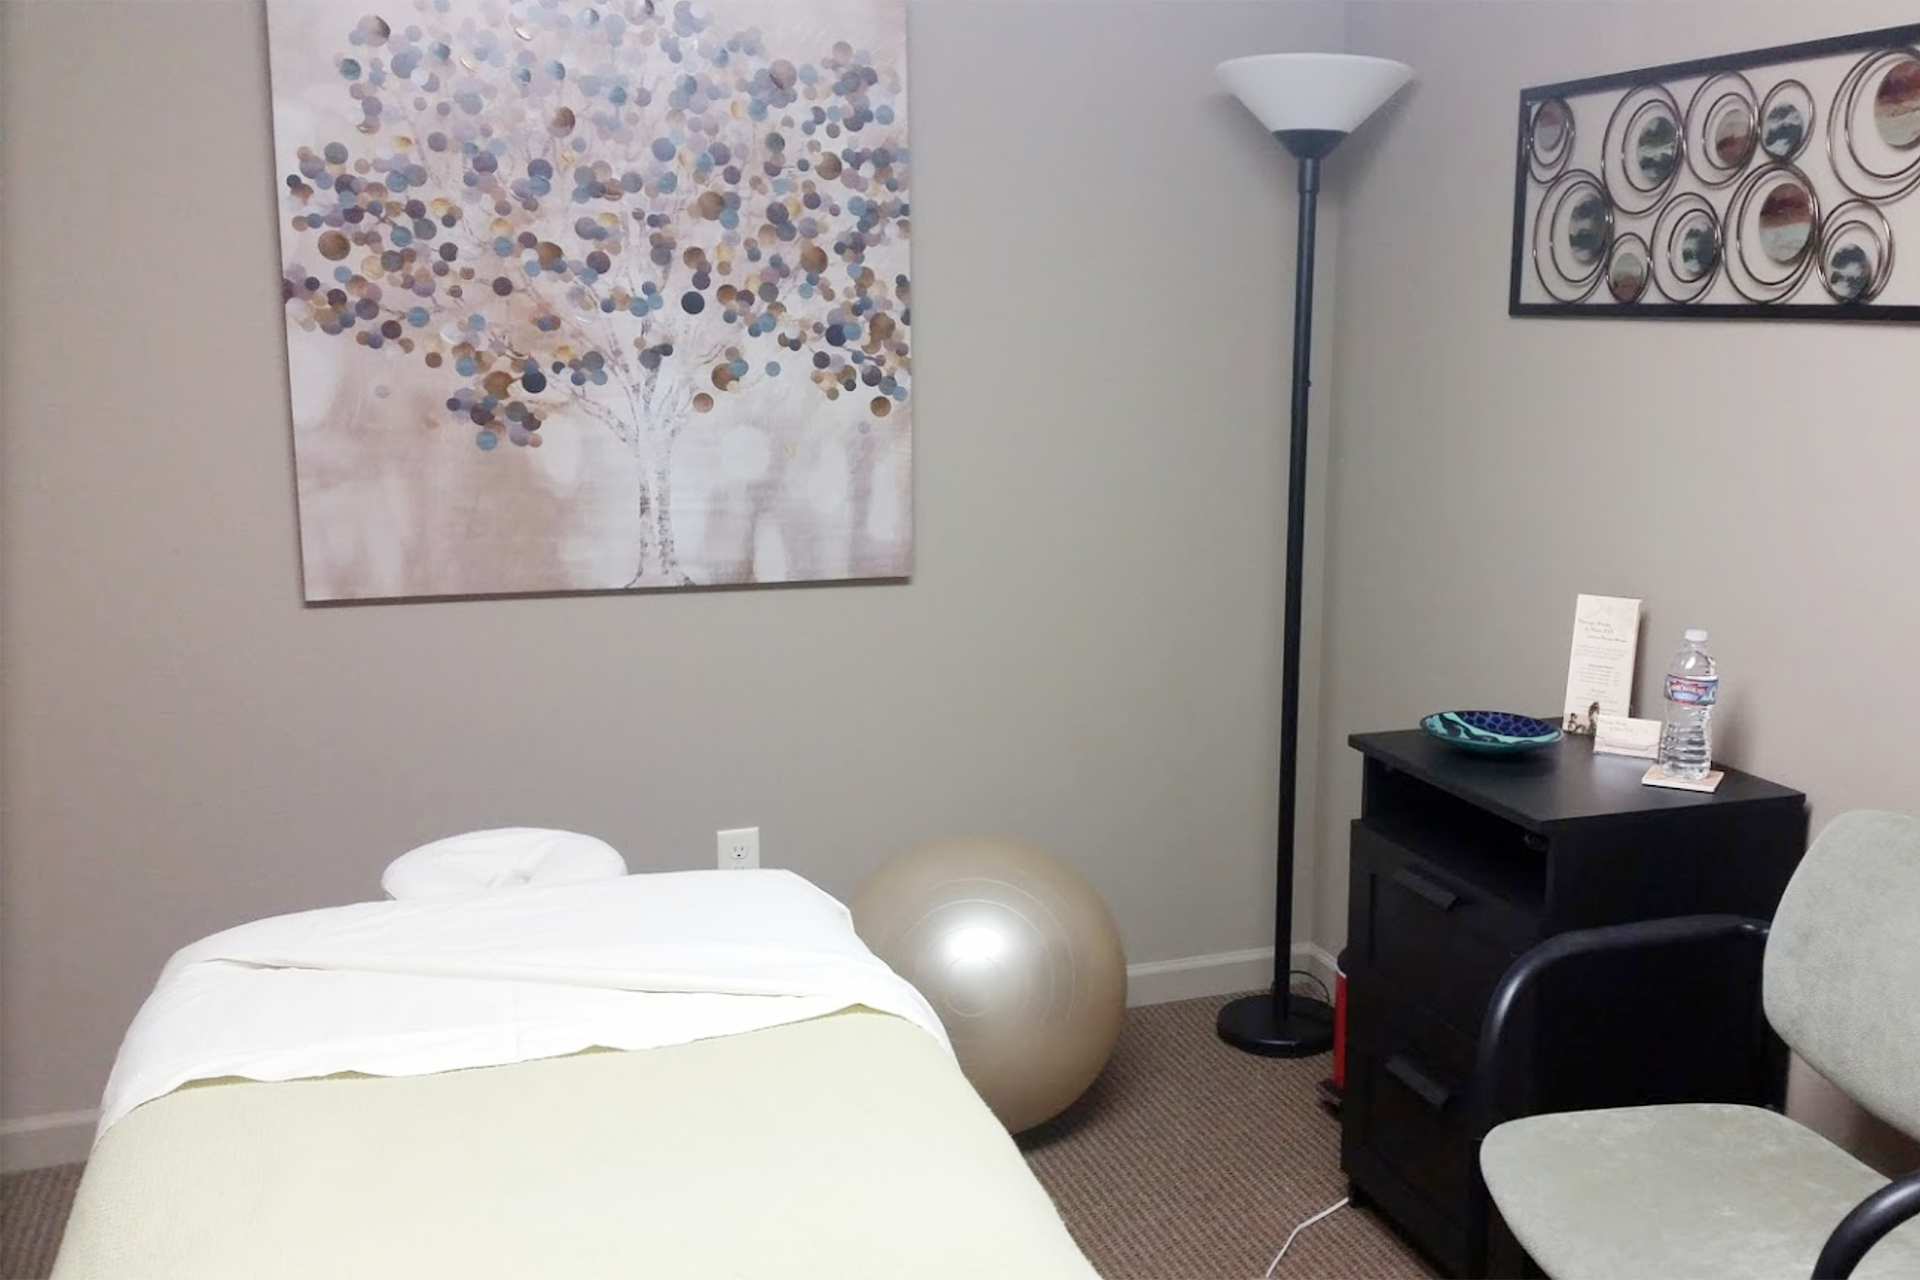 Massage Therapy By Diane Llc In Colorado Springs Co Vagaro